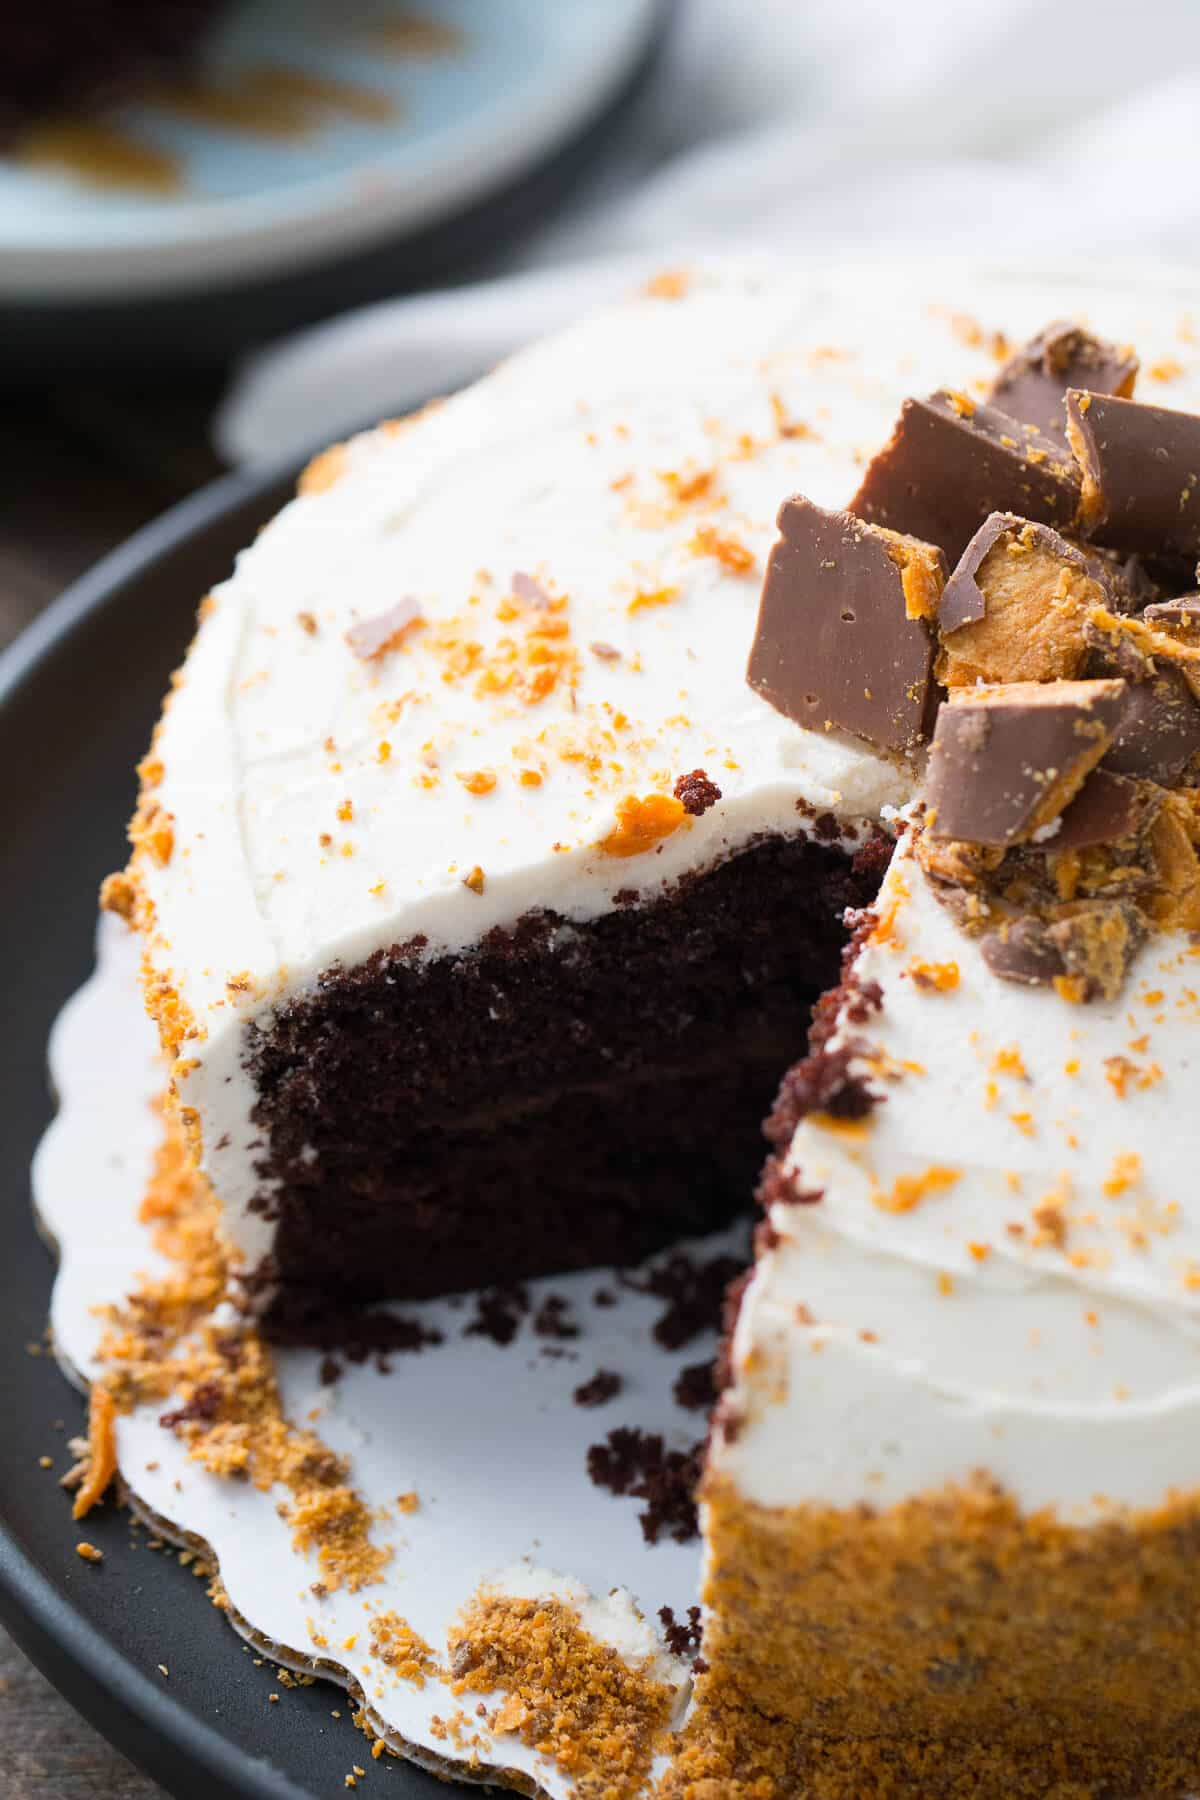 This Butterfinger cake is two layers of decadence! A rich chocolate cake is layered and filled with chocolate ganache and topped with Buttercream and Butterfingers!